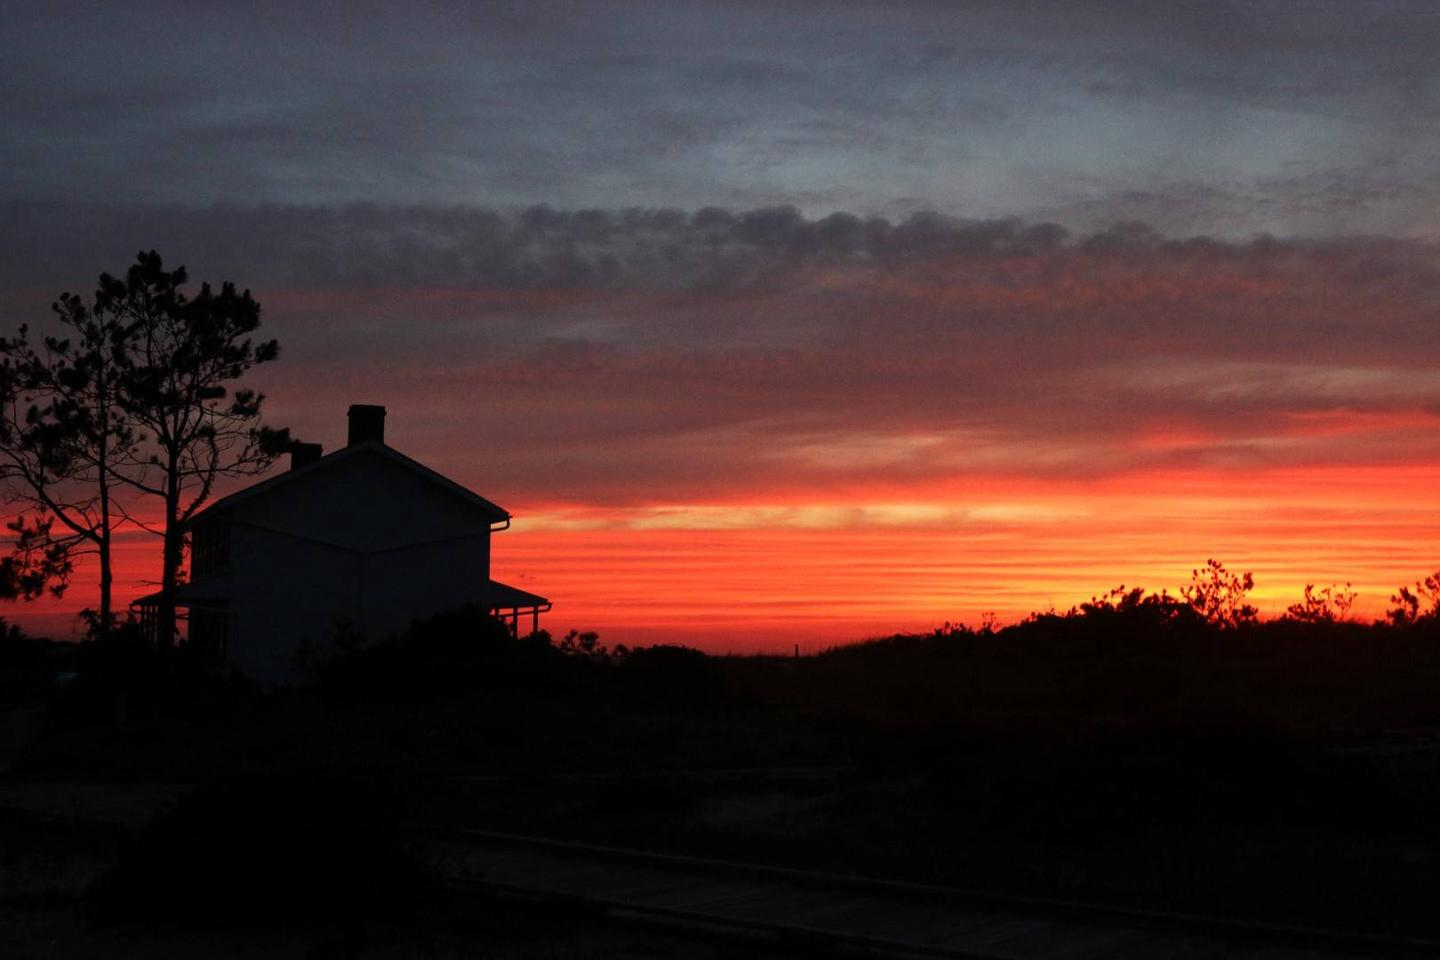 Silhouette of the Keepers Quarters with a red sky in the background.The view the Keepers had at dusk.